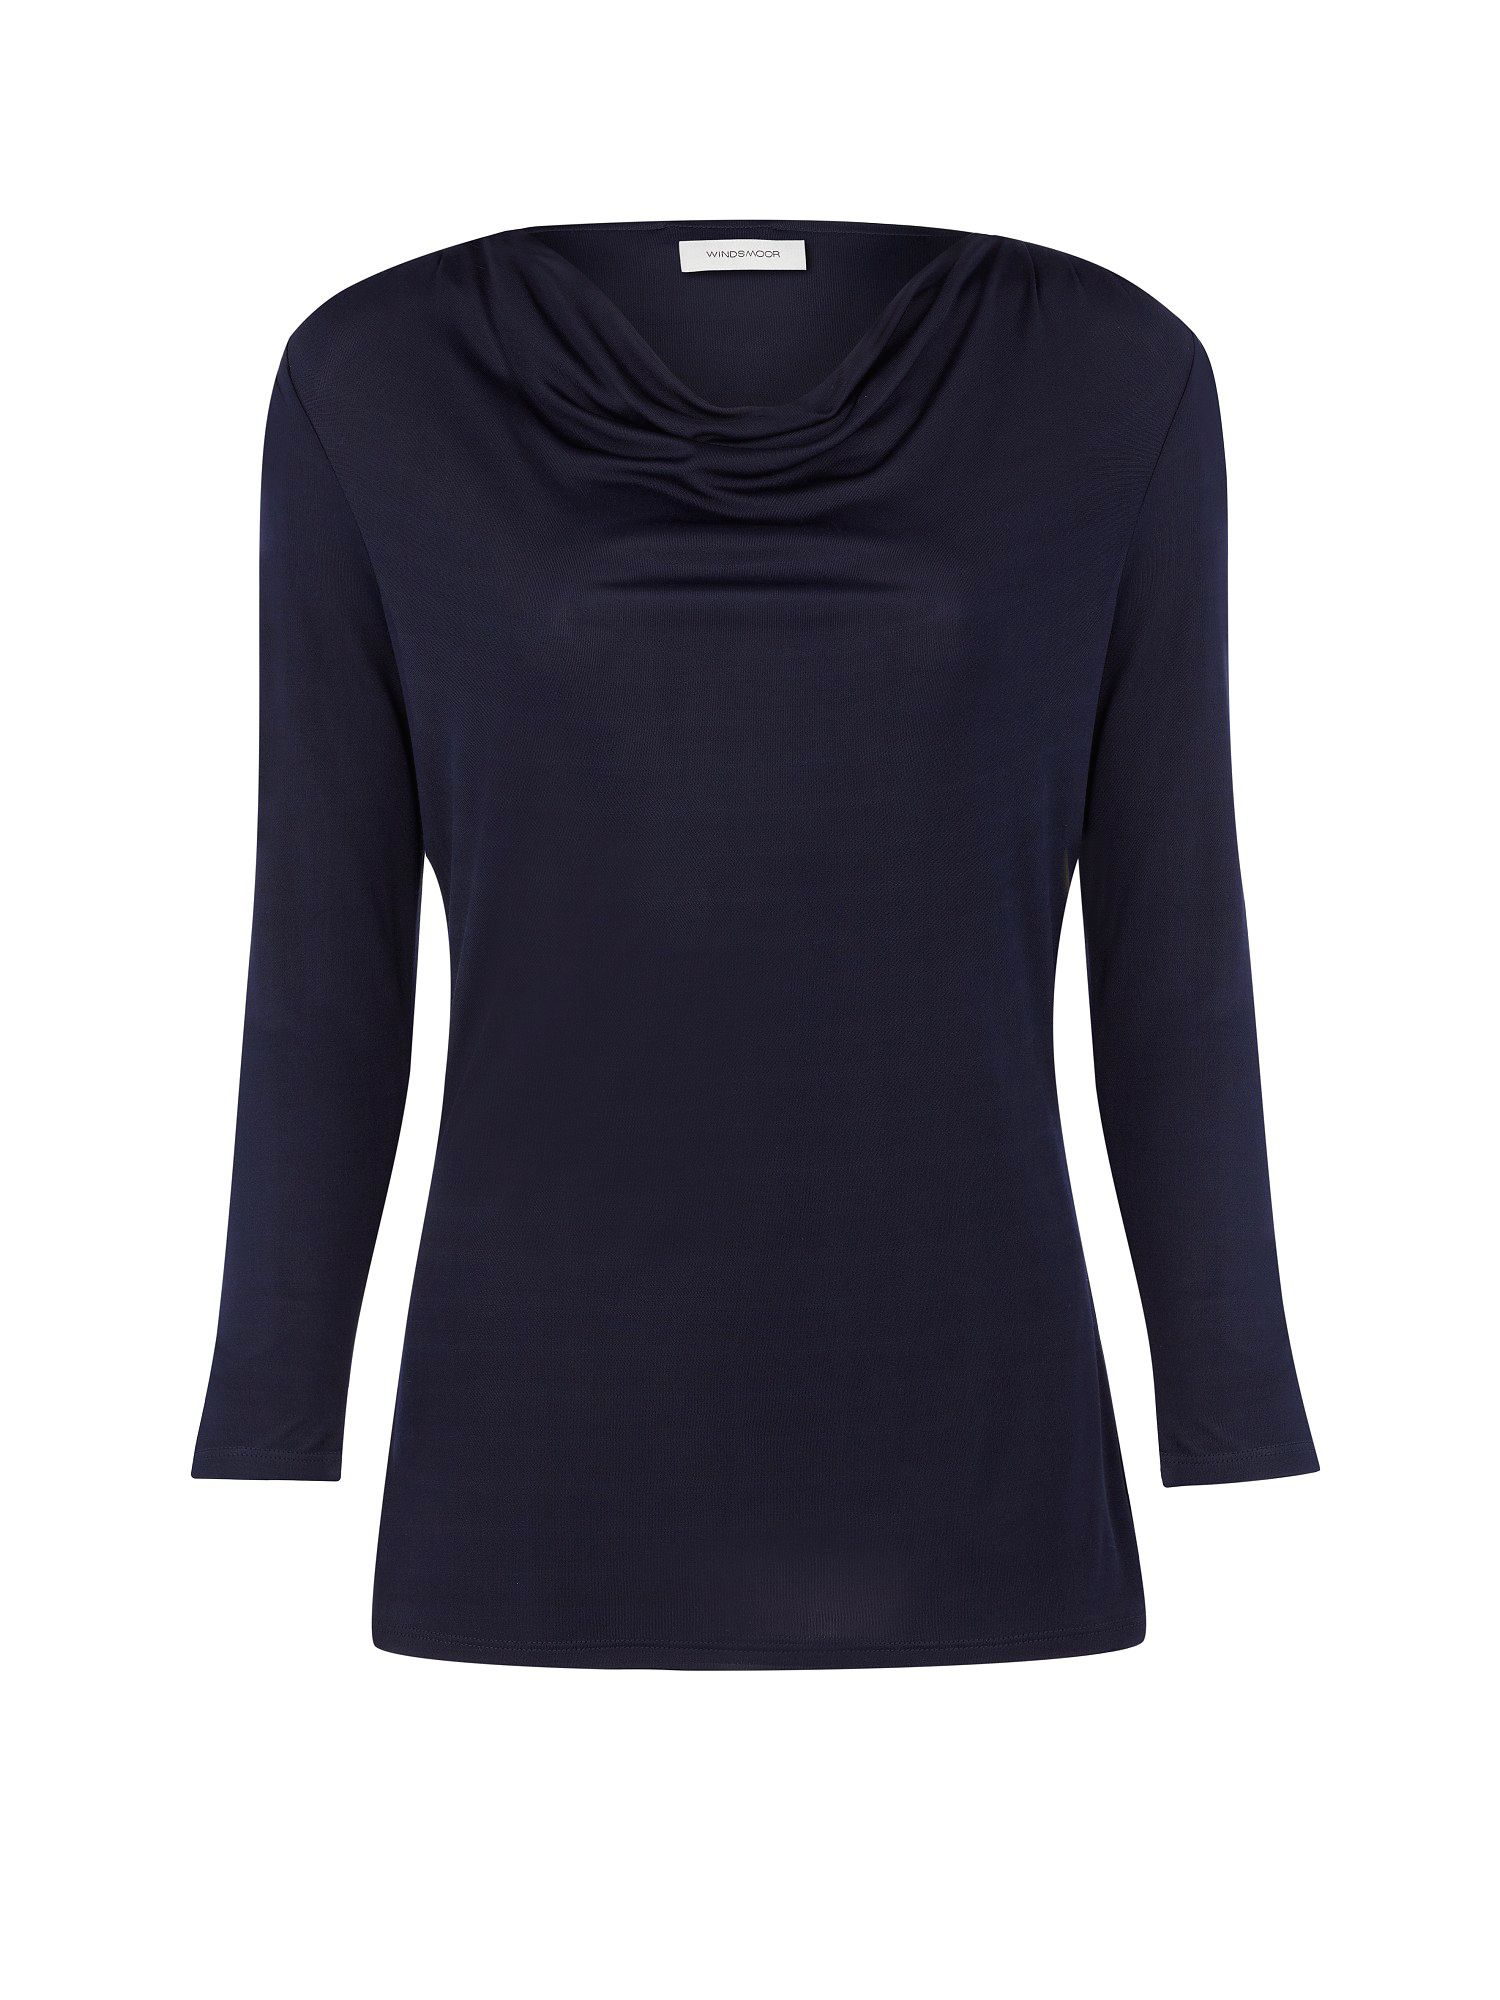 Navy cowl neck slinky top